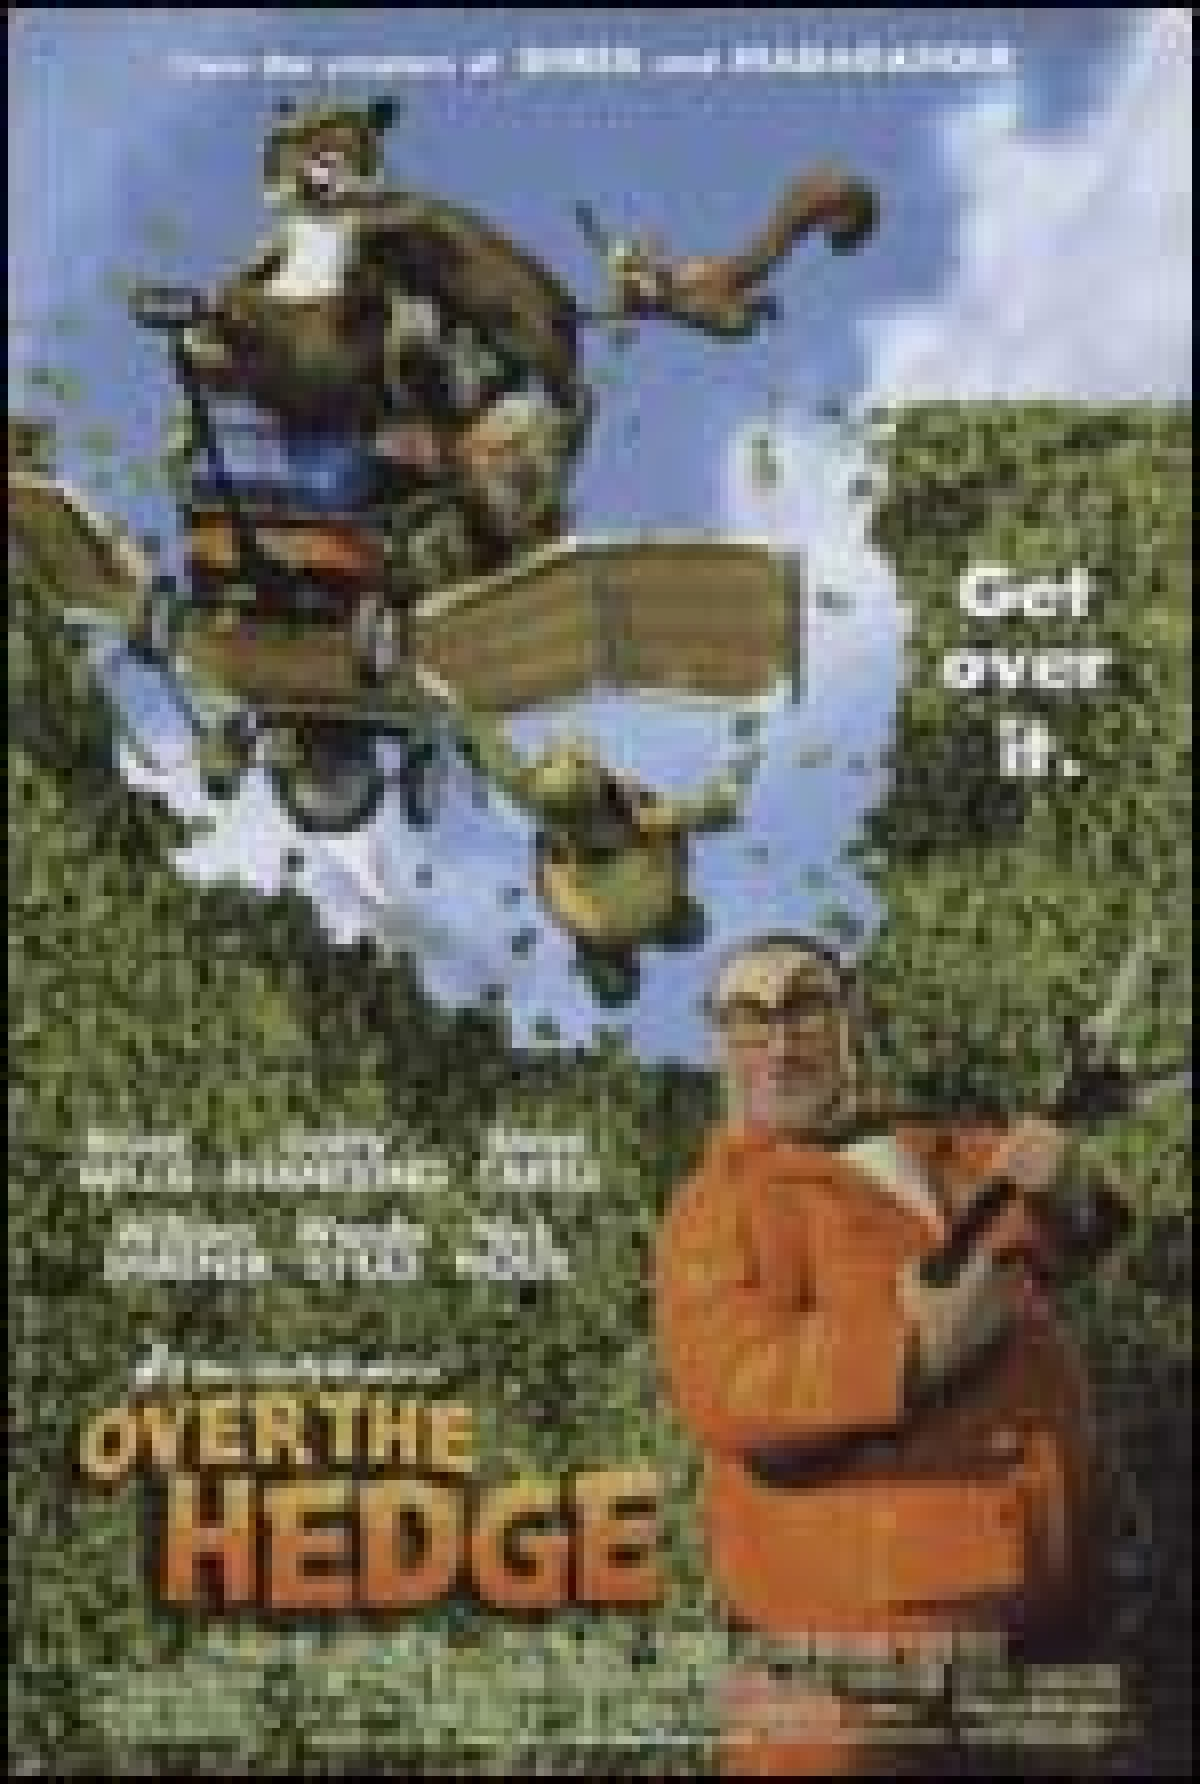 Watch the exclusive TV premiere of the animated family flick 'Over the Hedge' on HBO